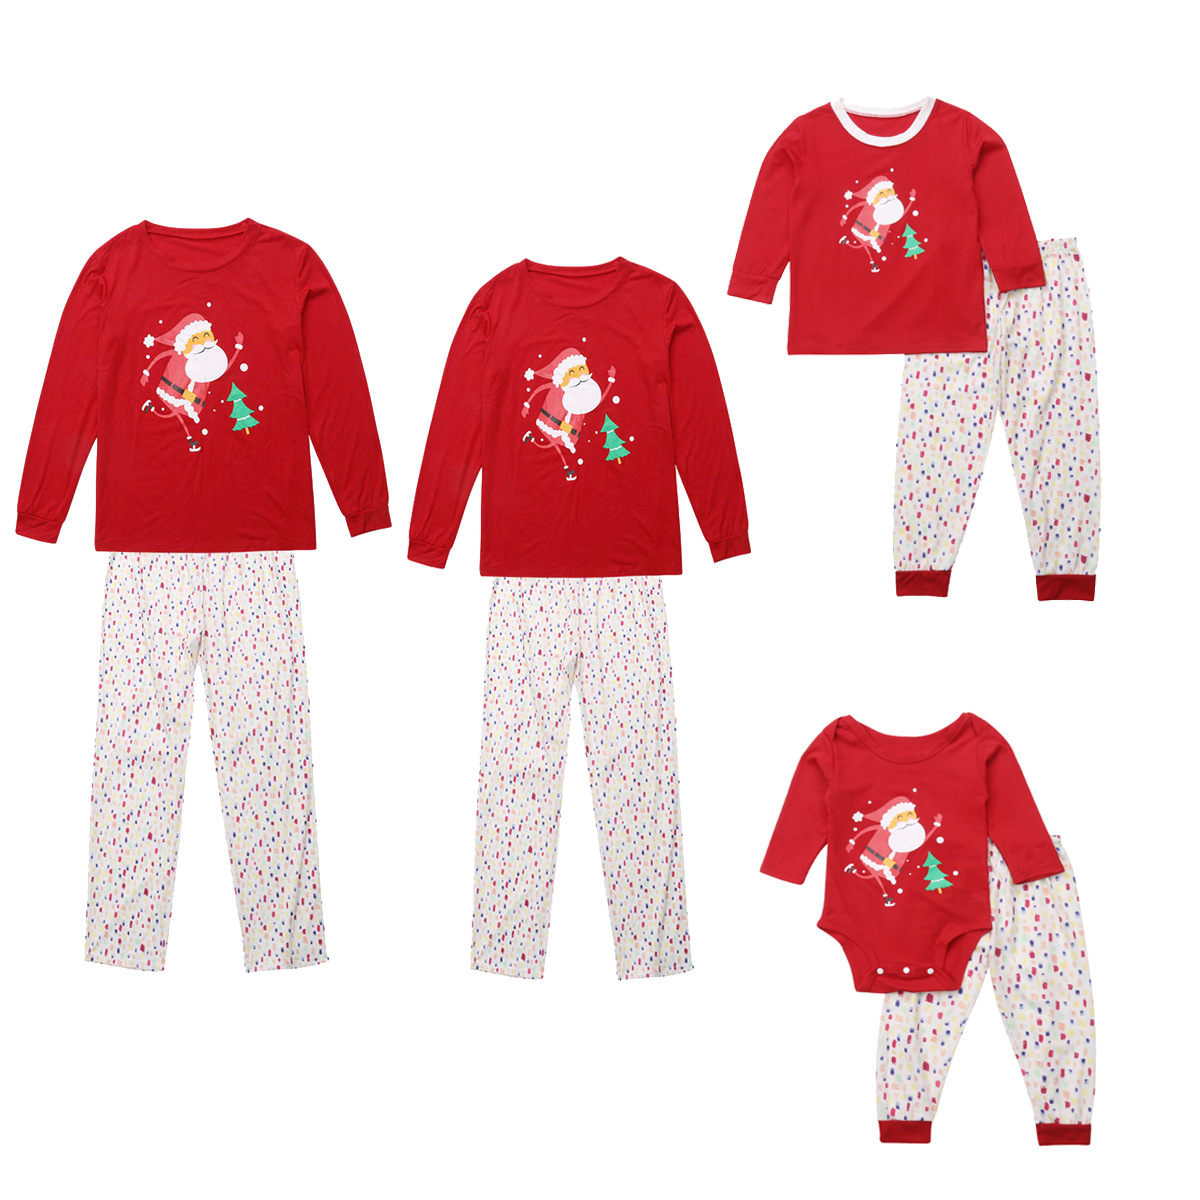 Christmas Family Matching Sleepwear Pajamas Sets Red Father Christmas Top and White Dots Pants